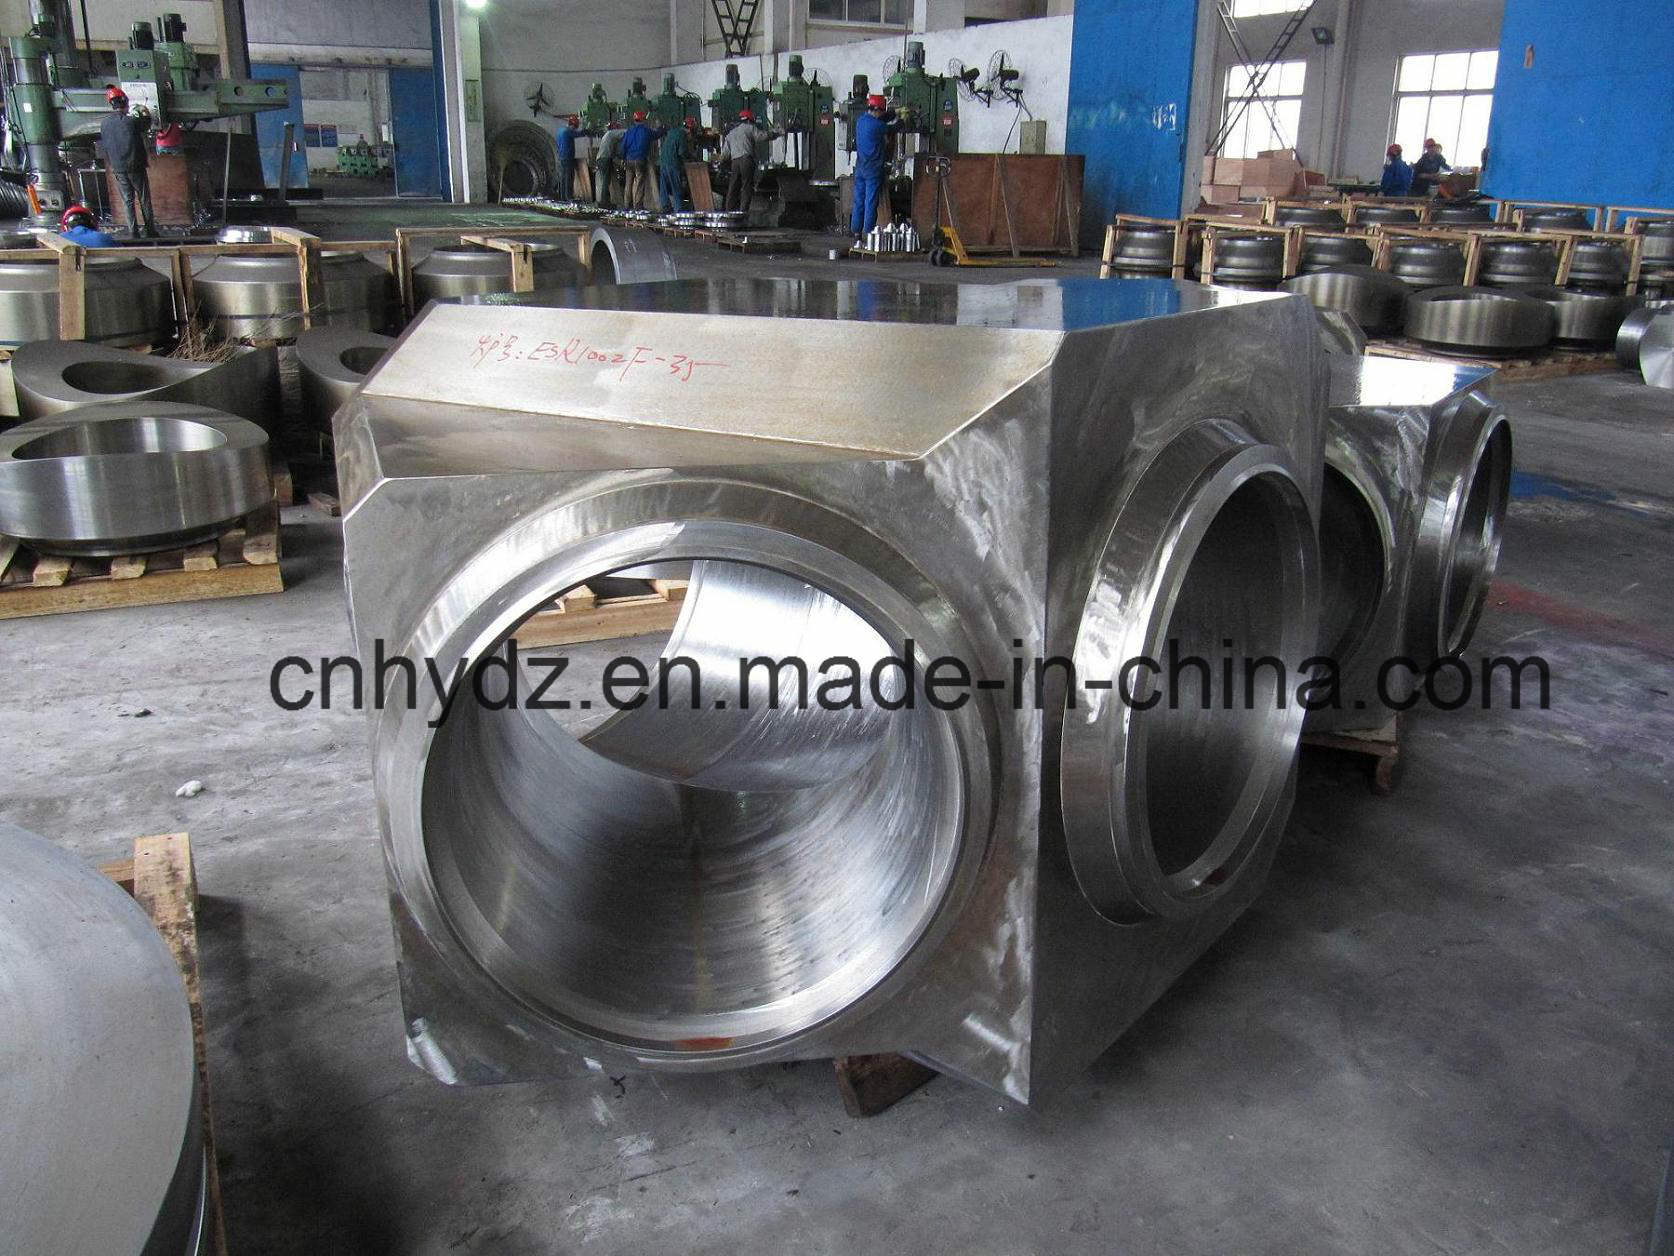 Hot Forged High Pressure Lateral Tee Valve